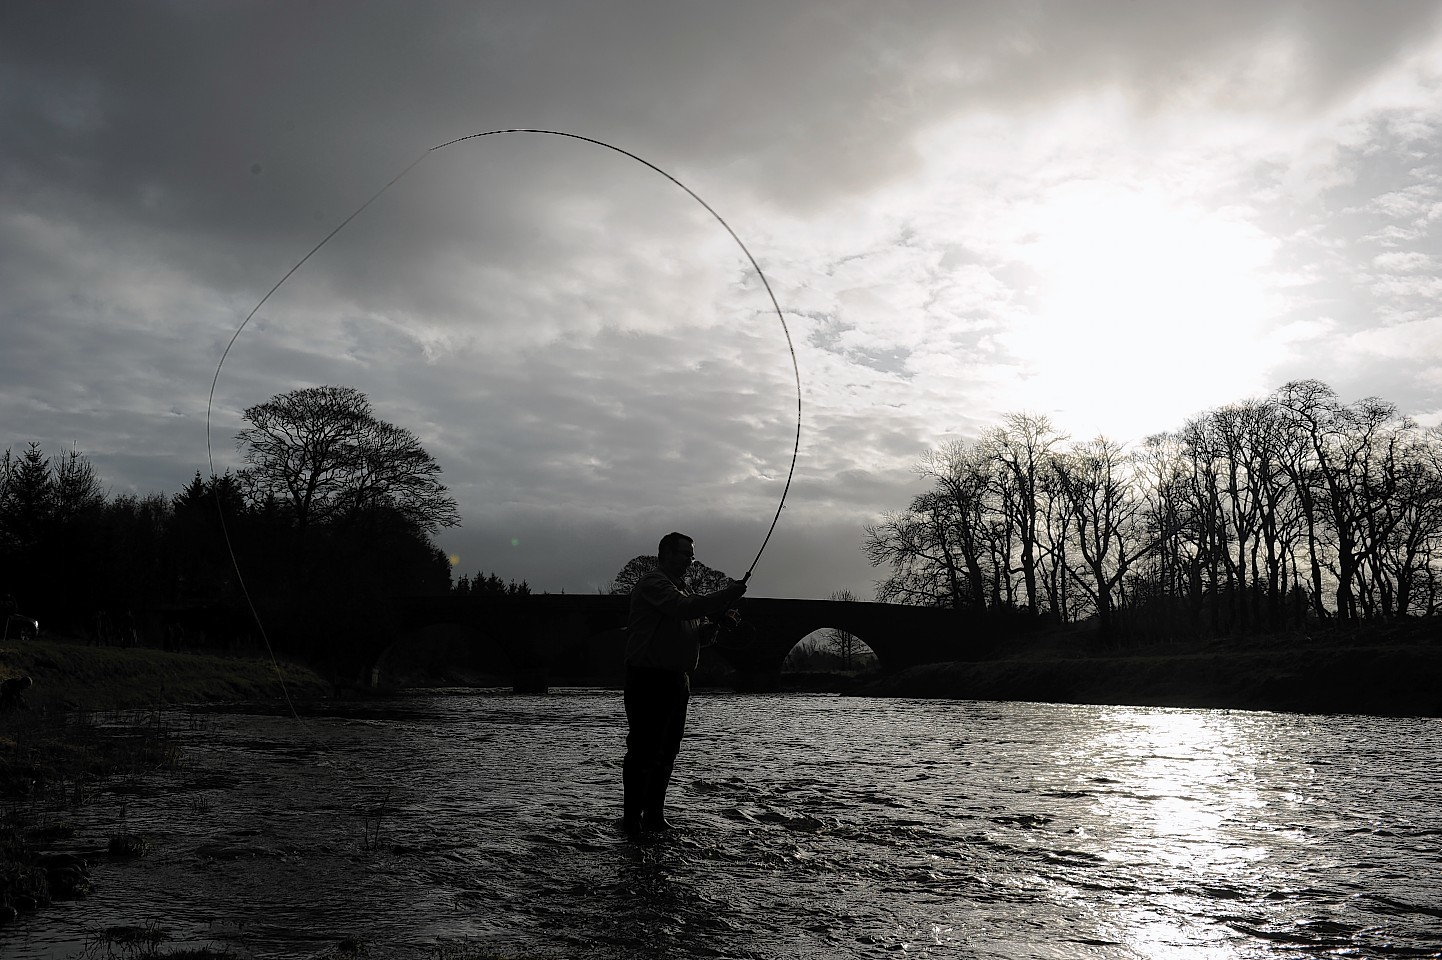 Craig Wyness throws the first line into the River Deveron.